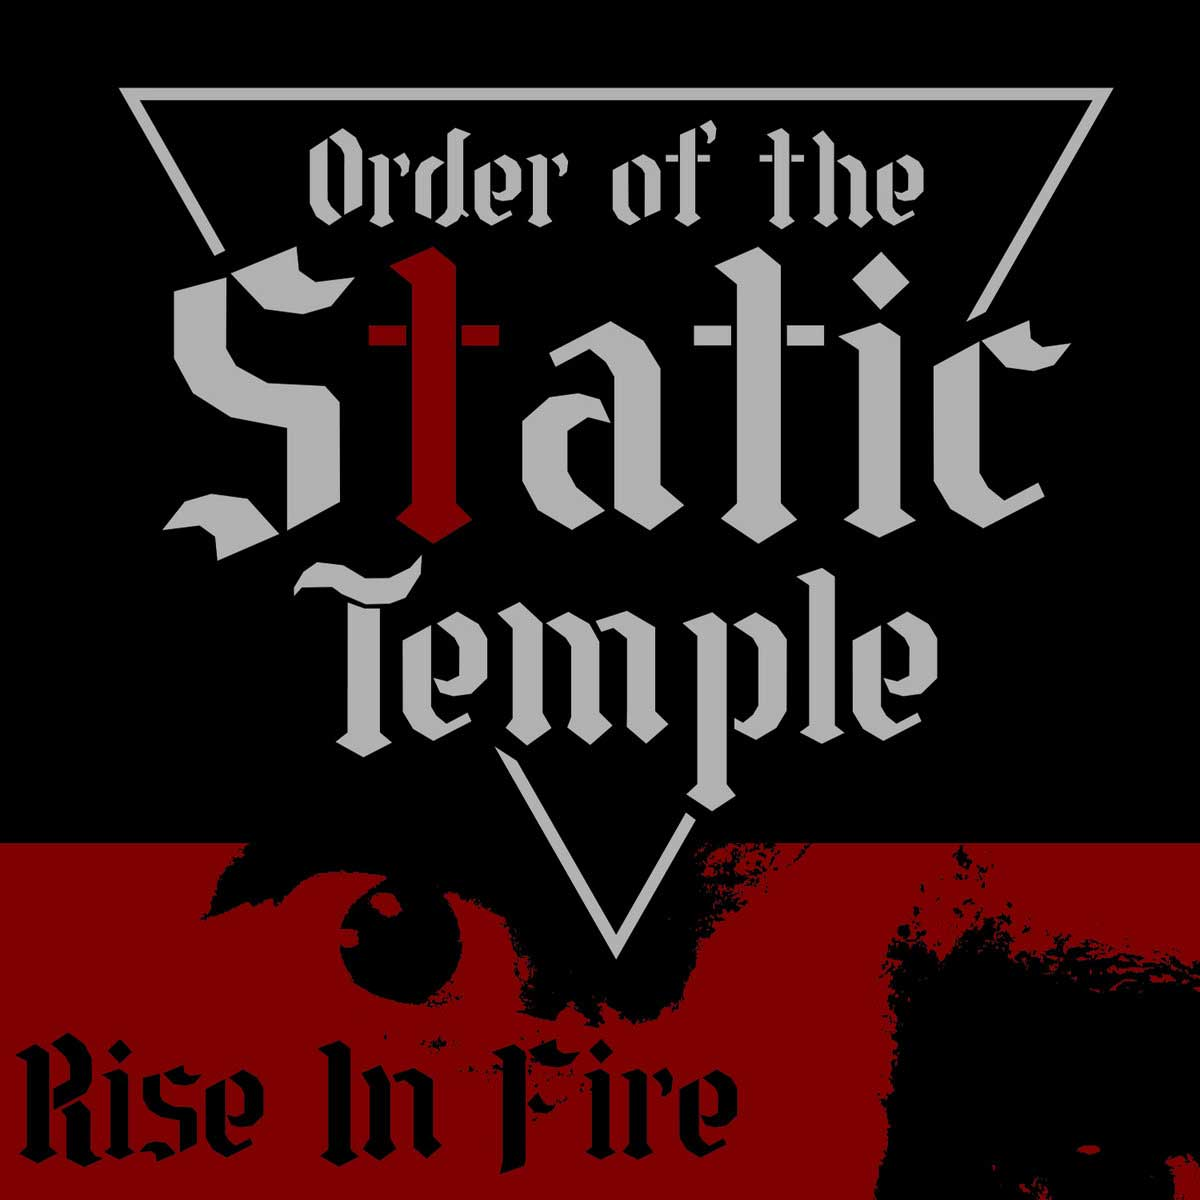 Order of the Static Temple – Rise In Fire - Order of the Static Temple – Rise In Fire